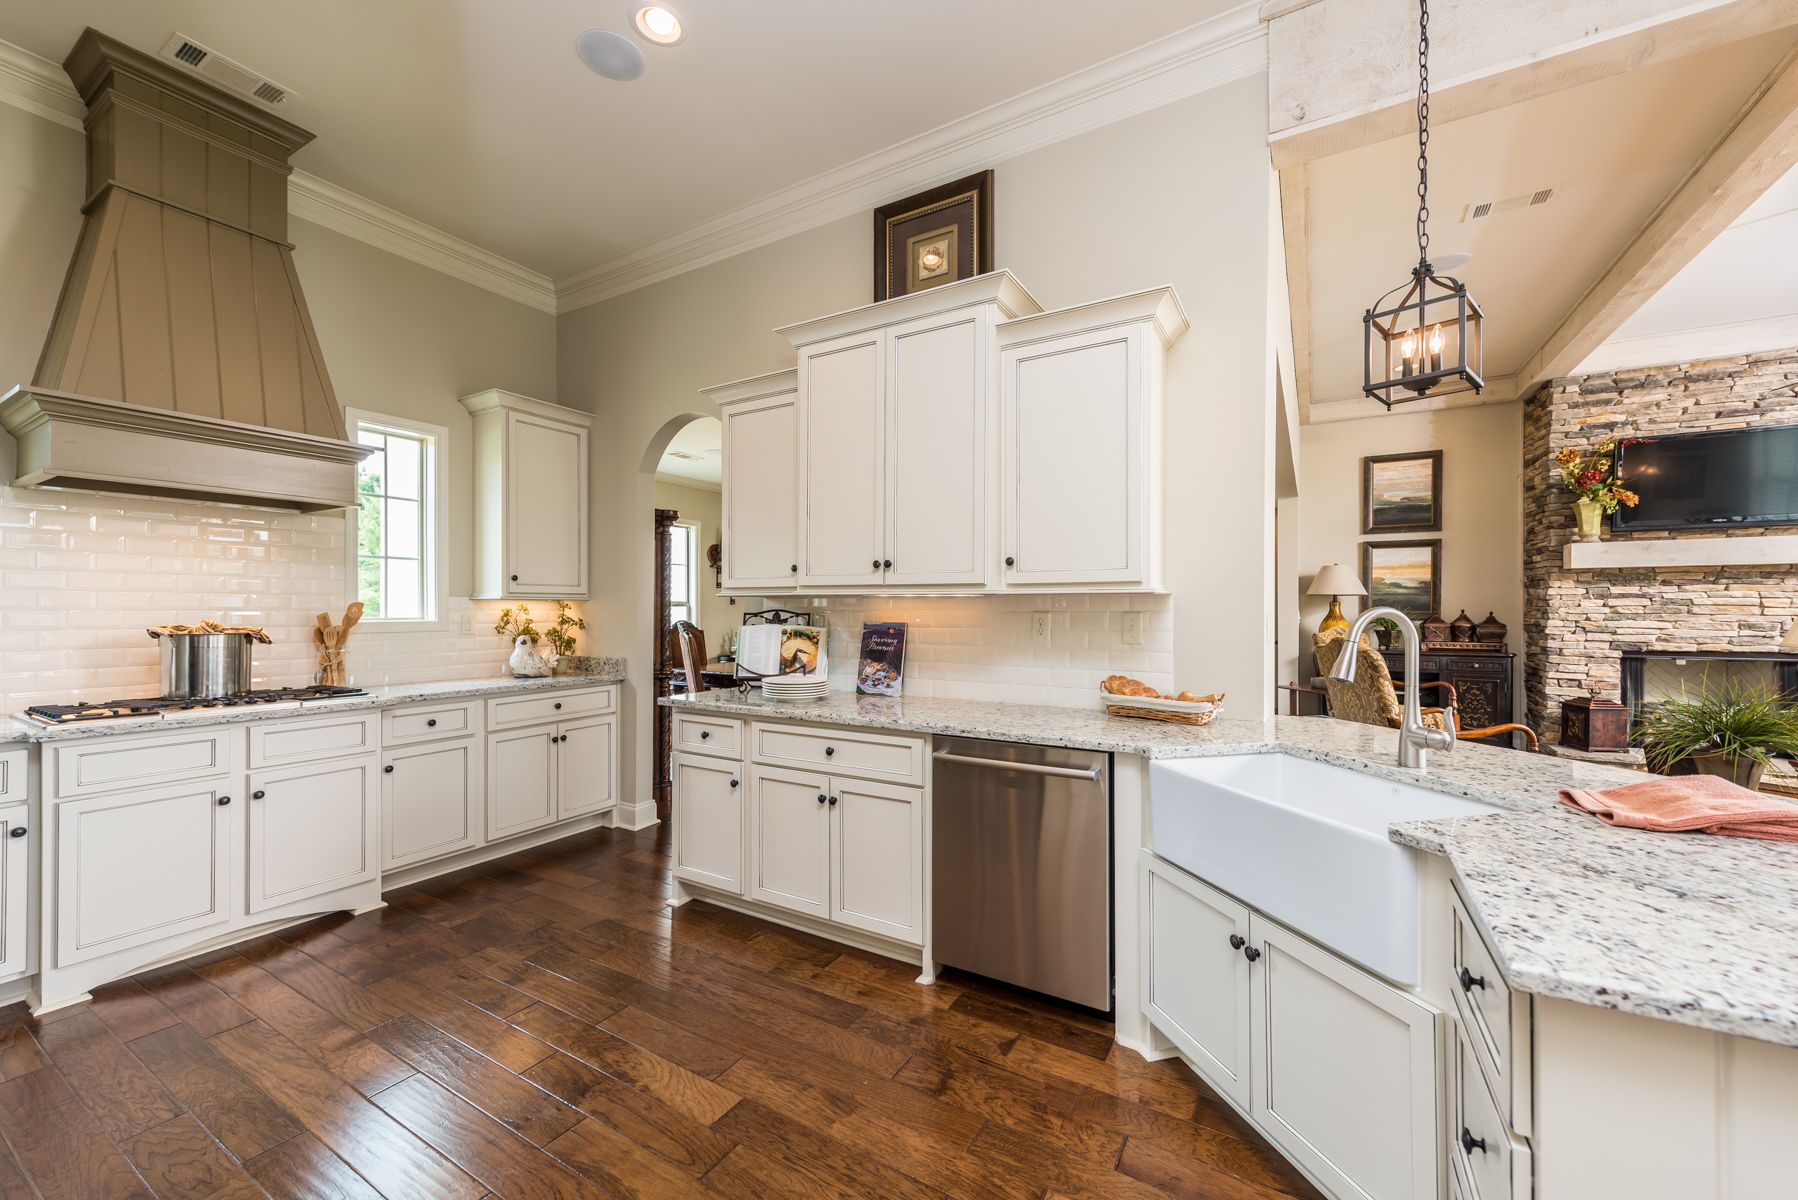 Beautiful Kitchen With White Subway Tile And Custom Built Cabinetry Stunning Home Kitchens Magnolia Homes Home Builders